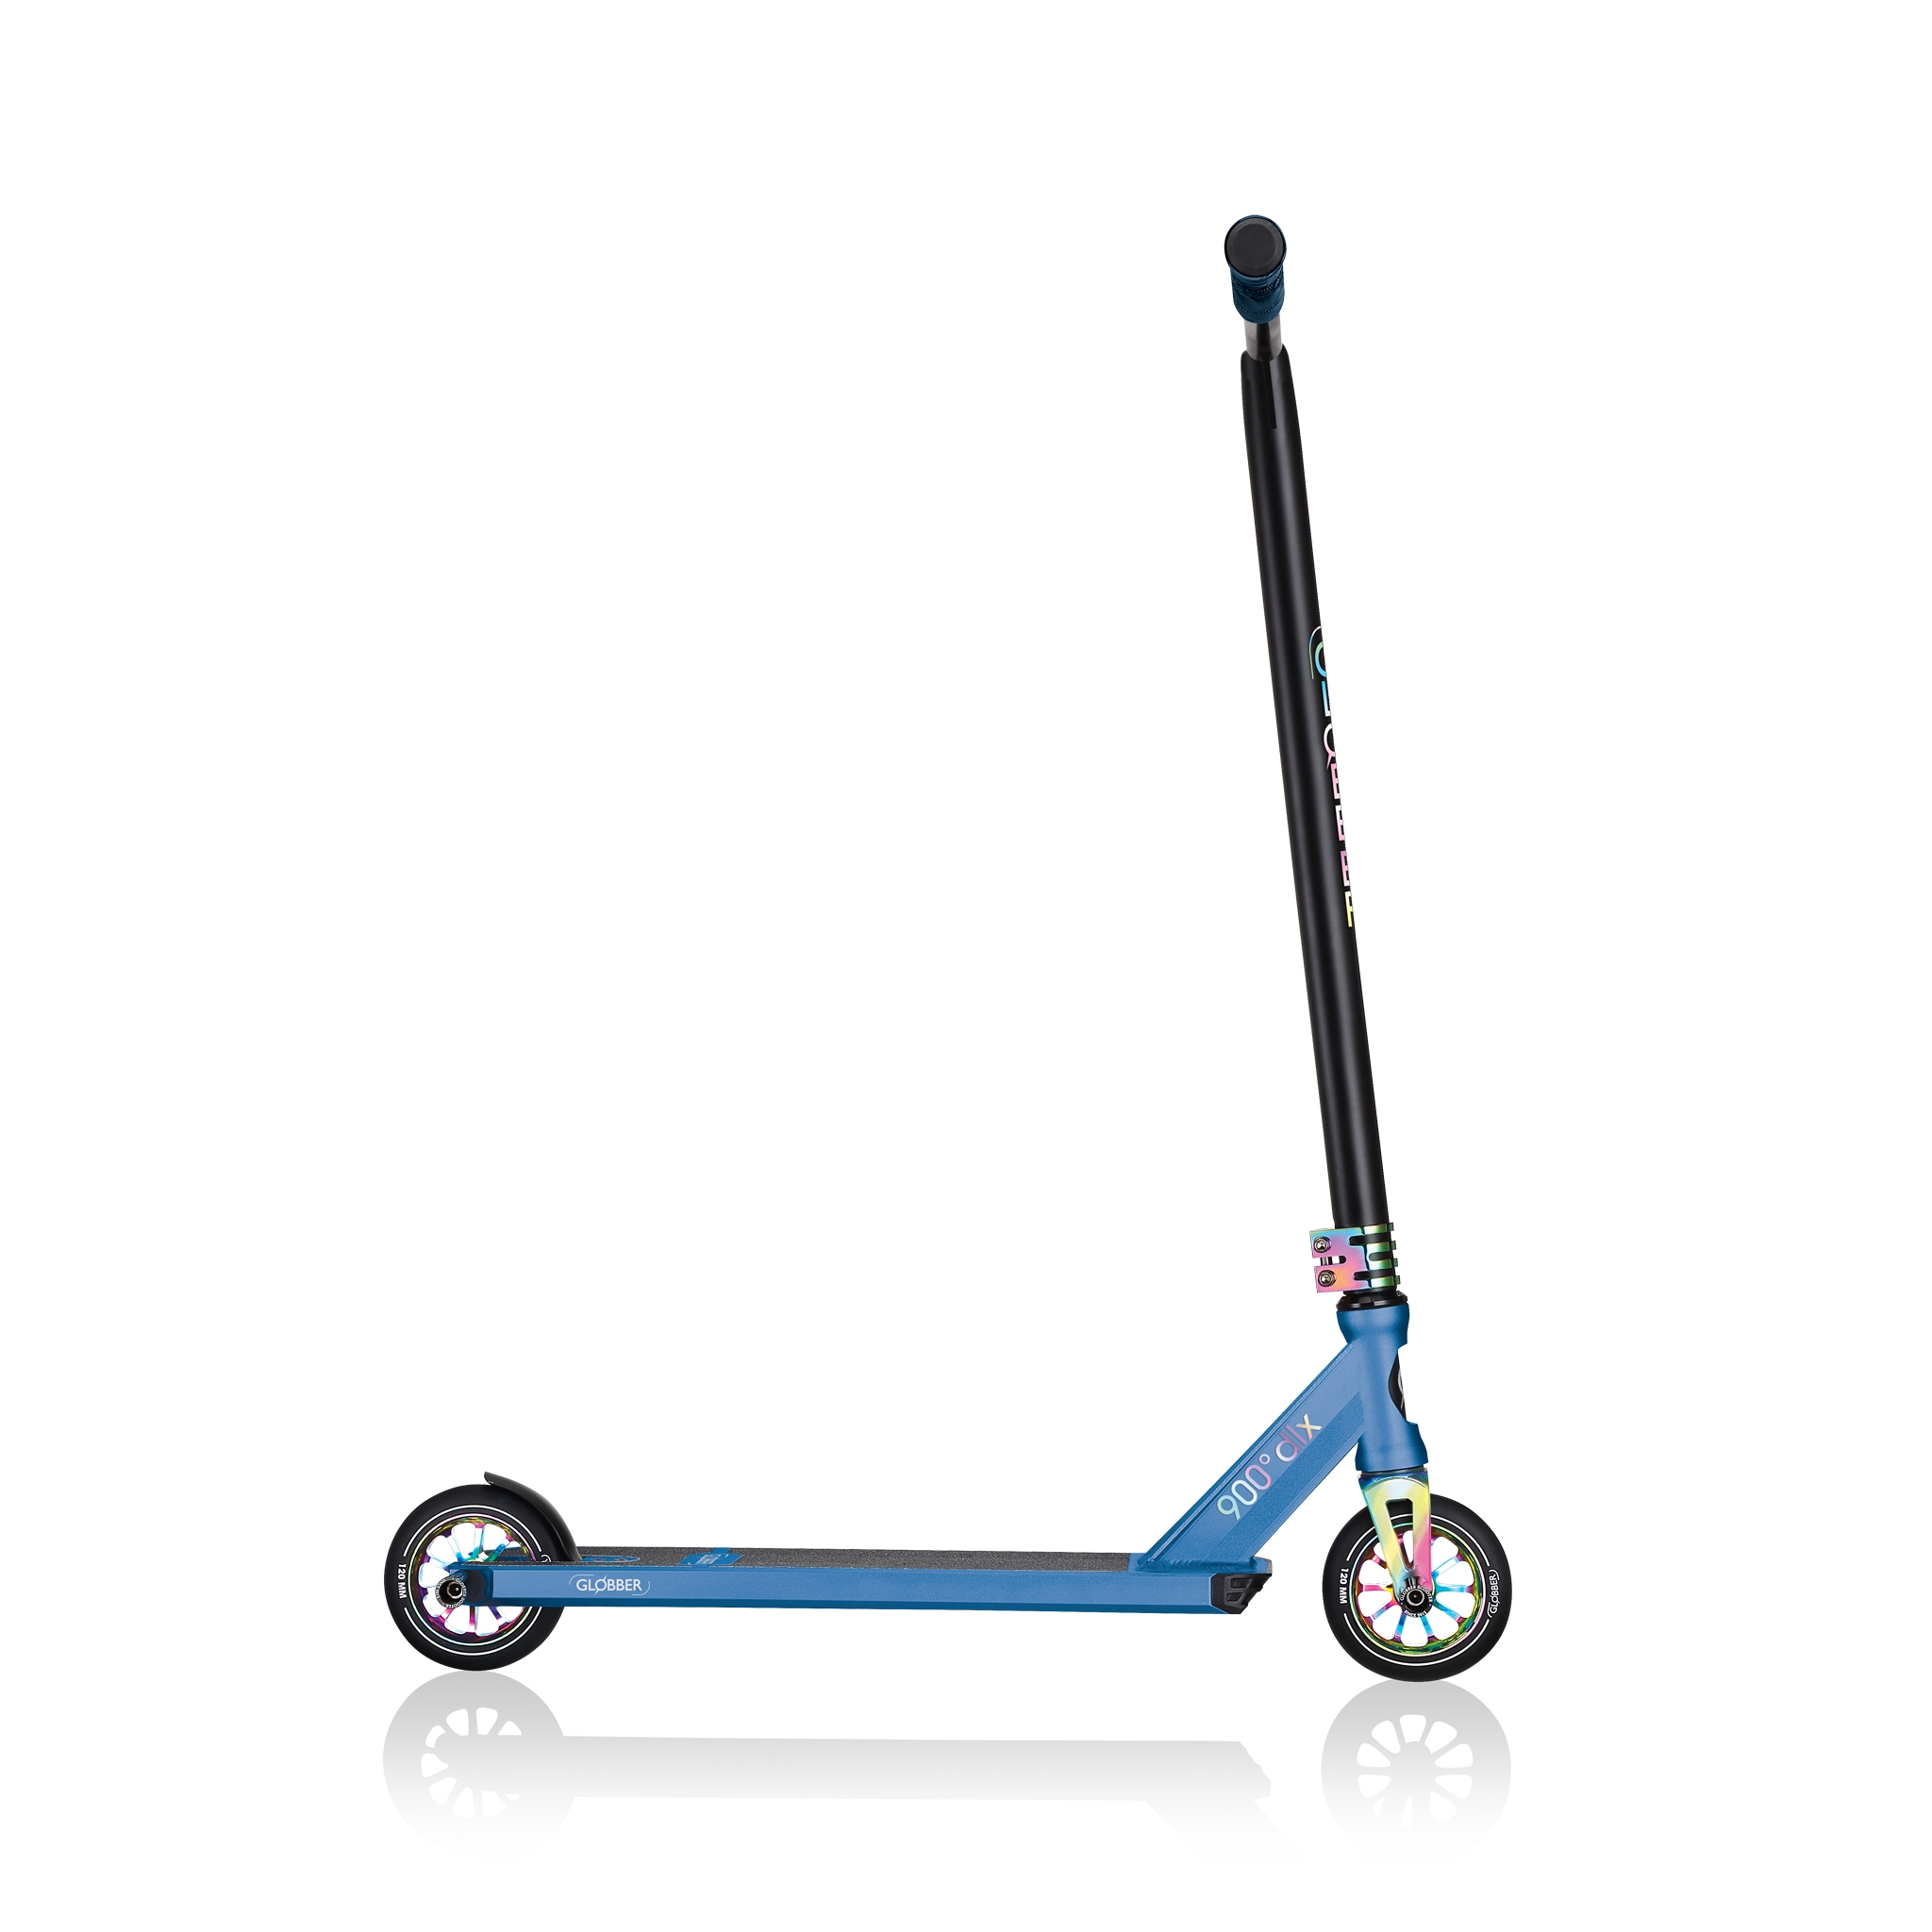 high-quality-stunt-scooter-with-120mm-wheels-Globber-GS-900-DELUXE 4